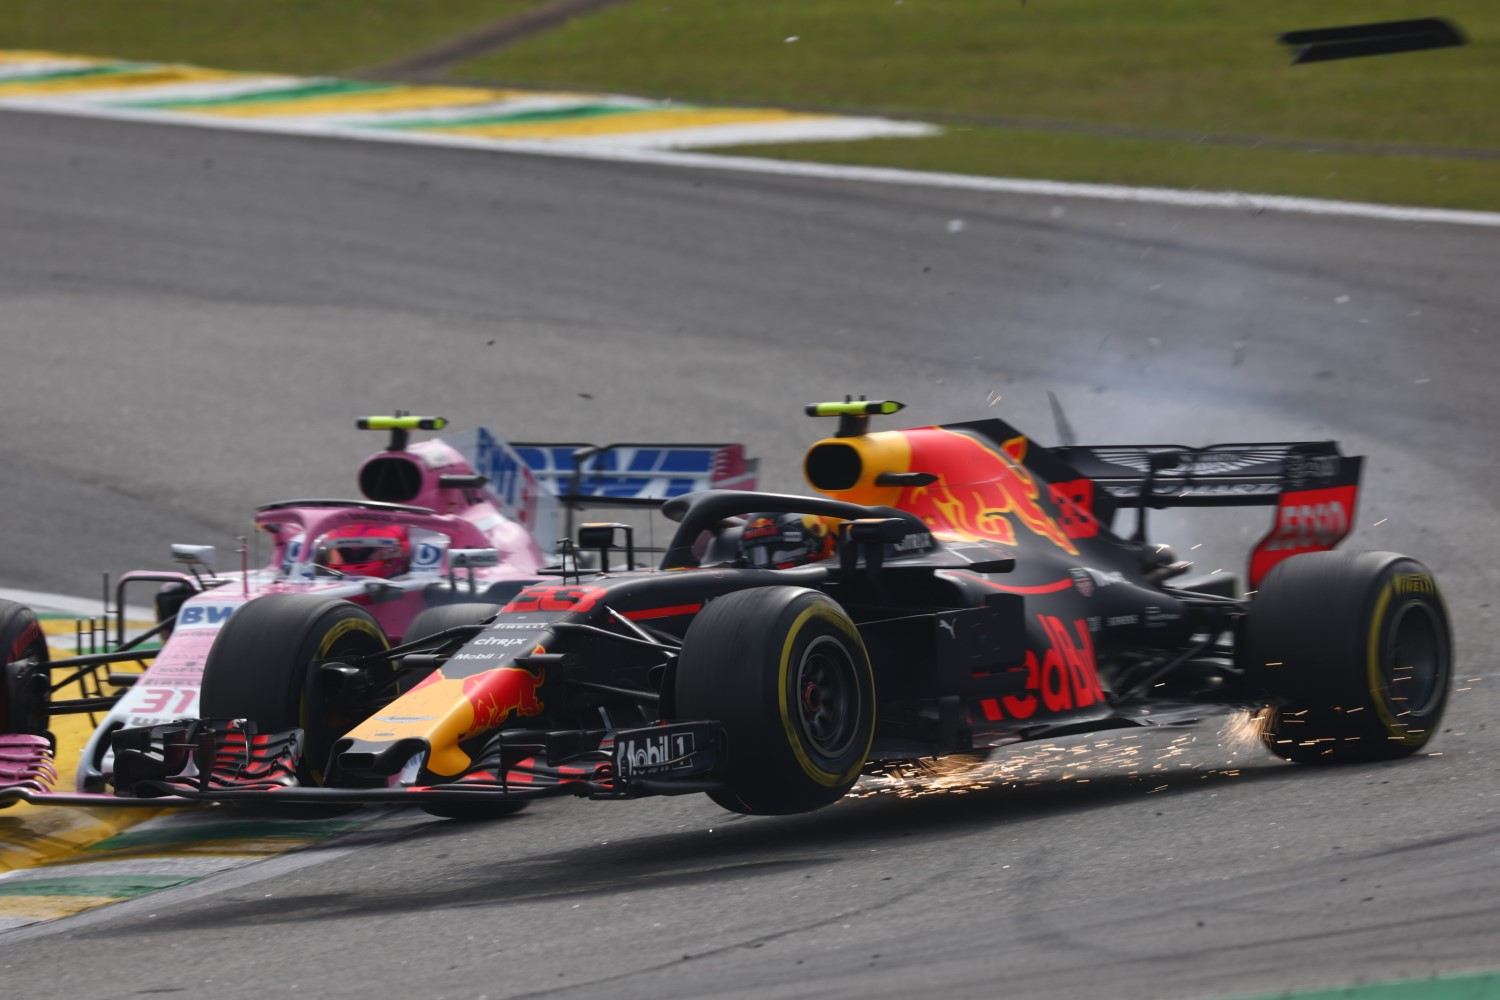 Ocon slams Verstappen, but did he teach Max a lesson?